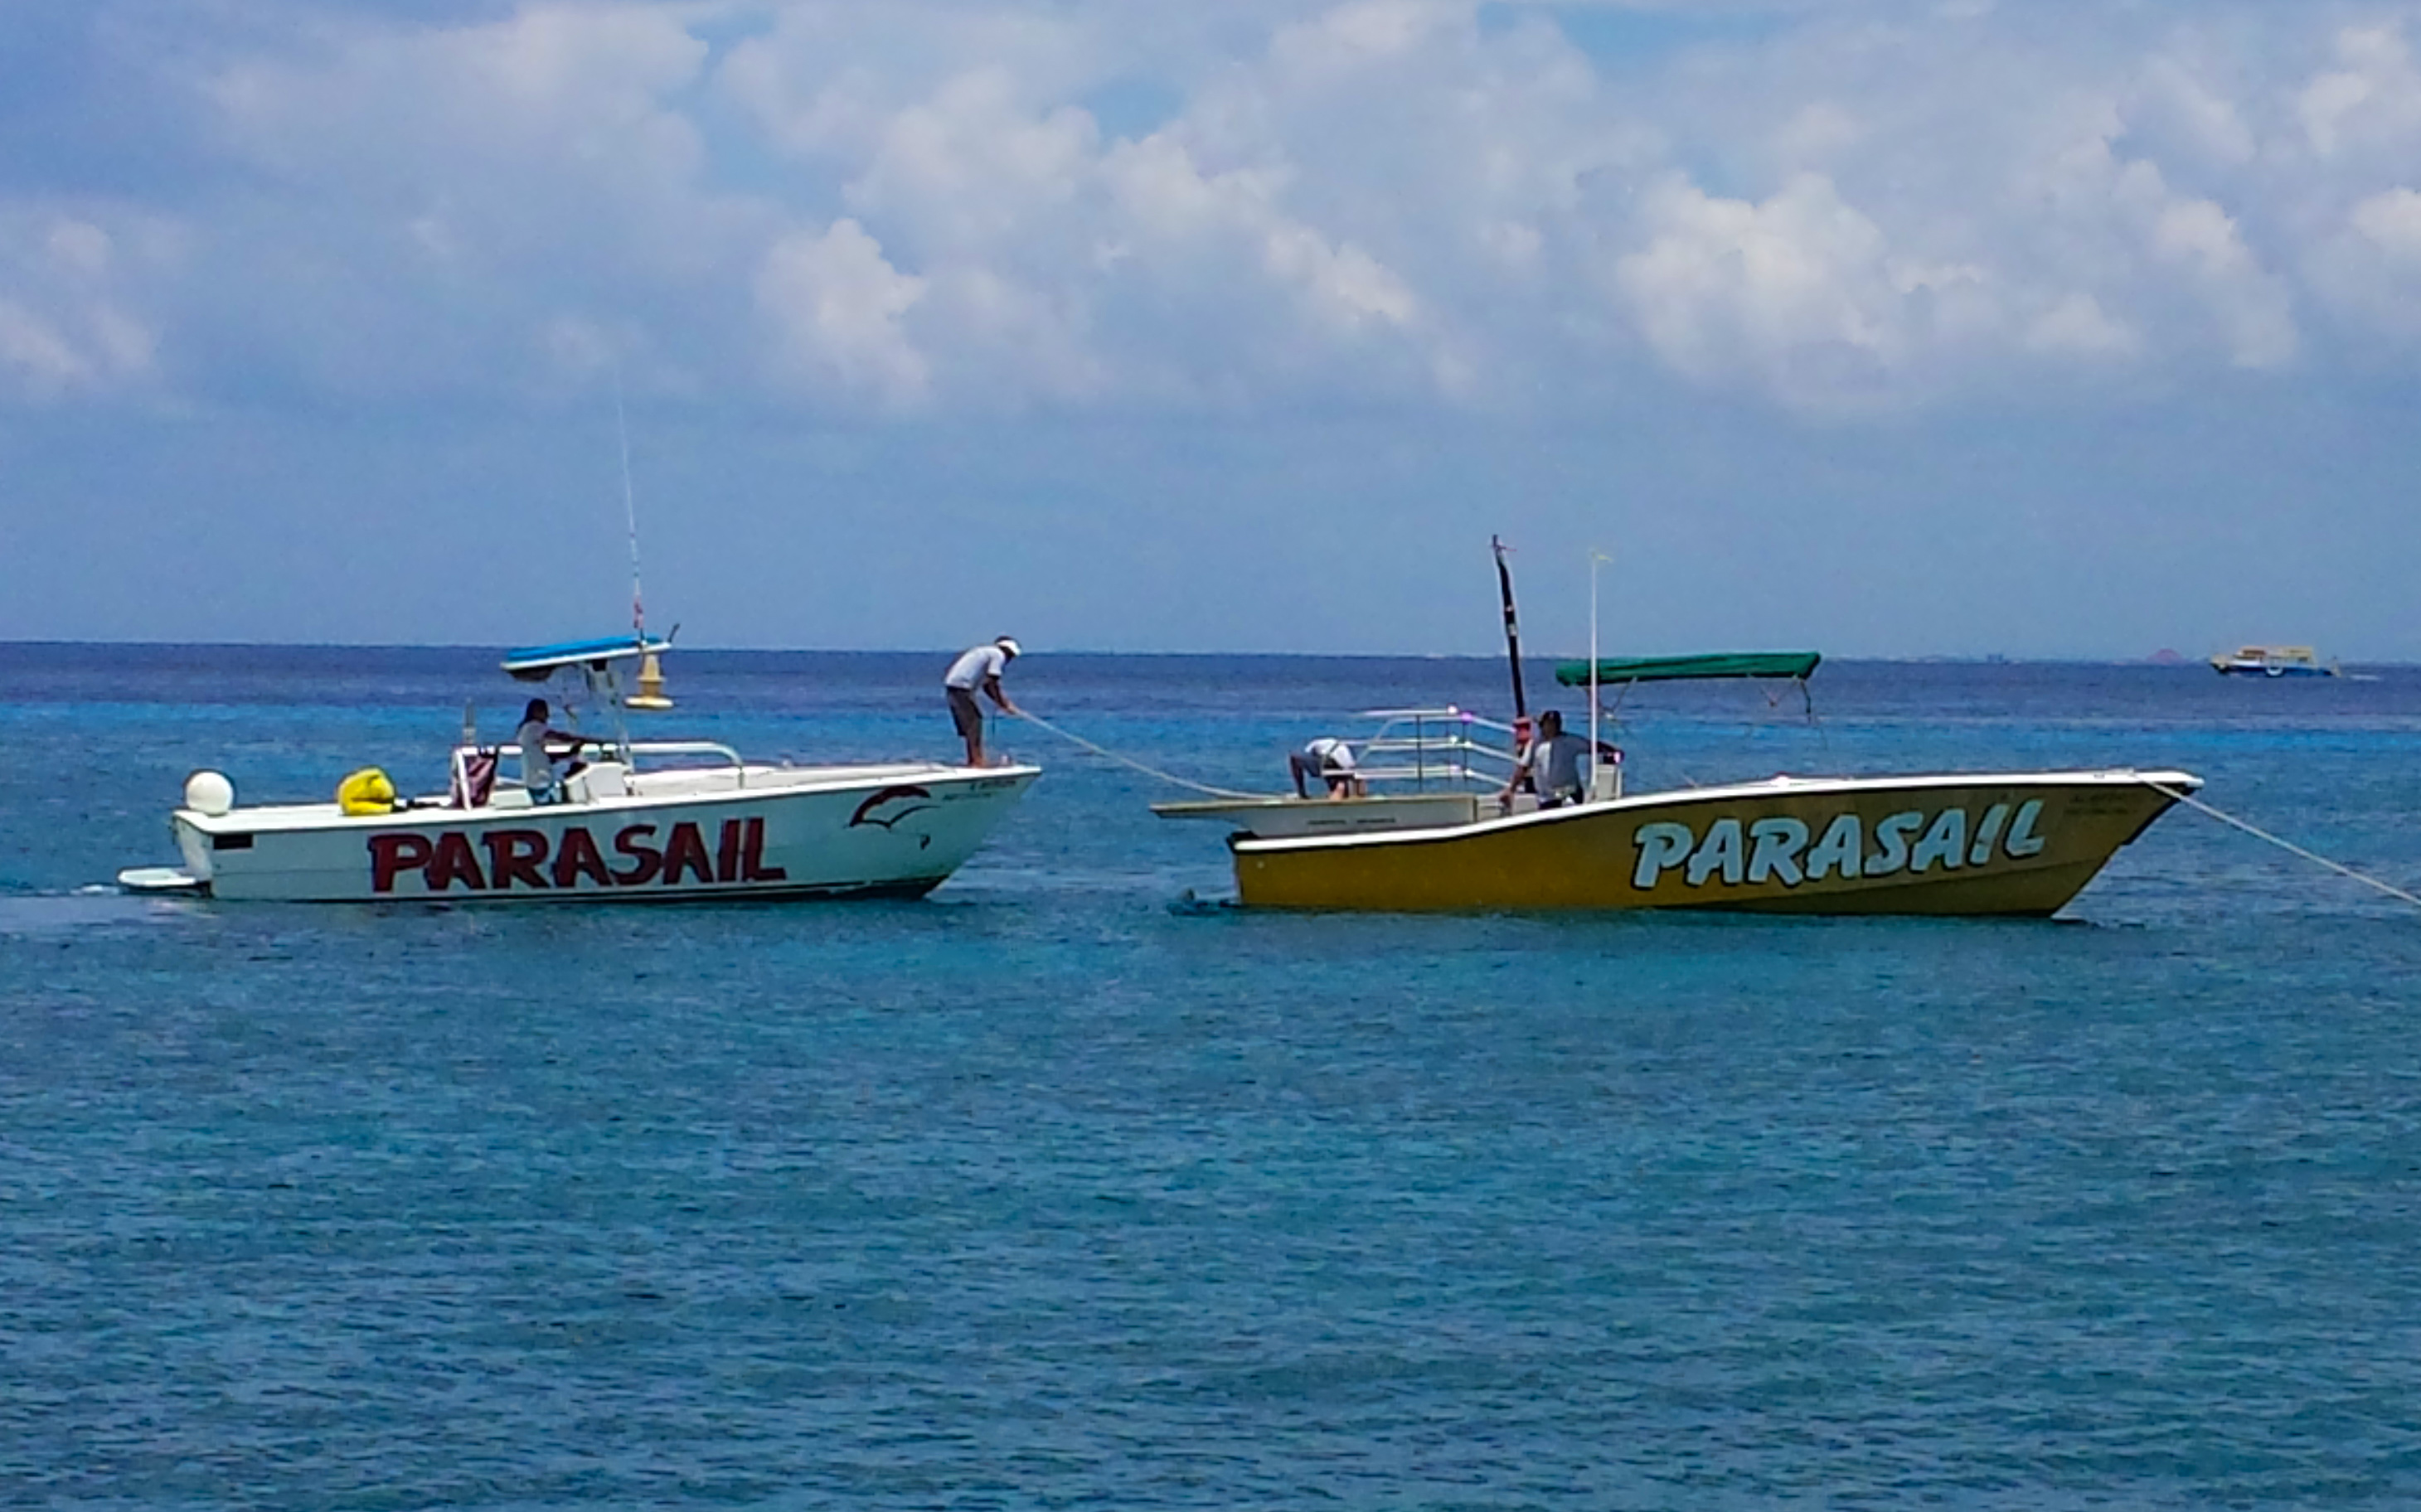 Cozumle Parasailing Boats Cozumel Cruise Excursions